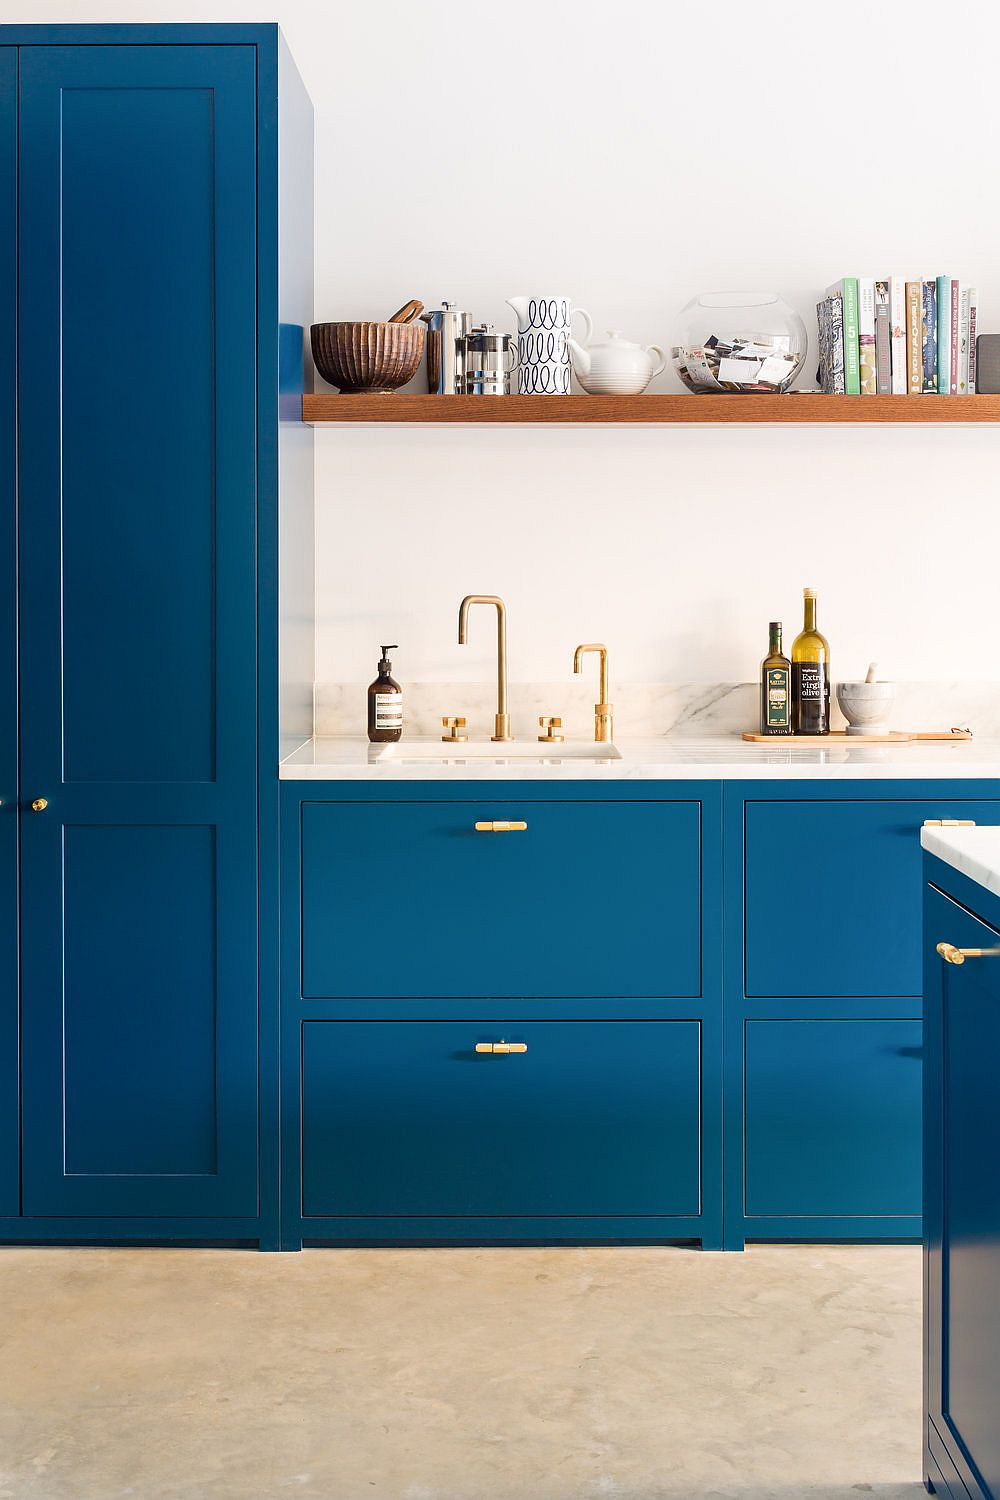 Sleek wooden shelves in oak serves as a lovely display in this kitchen